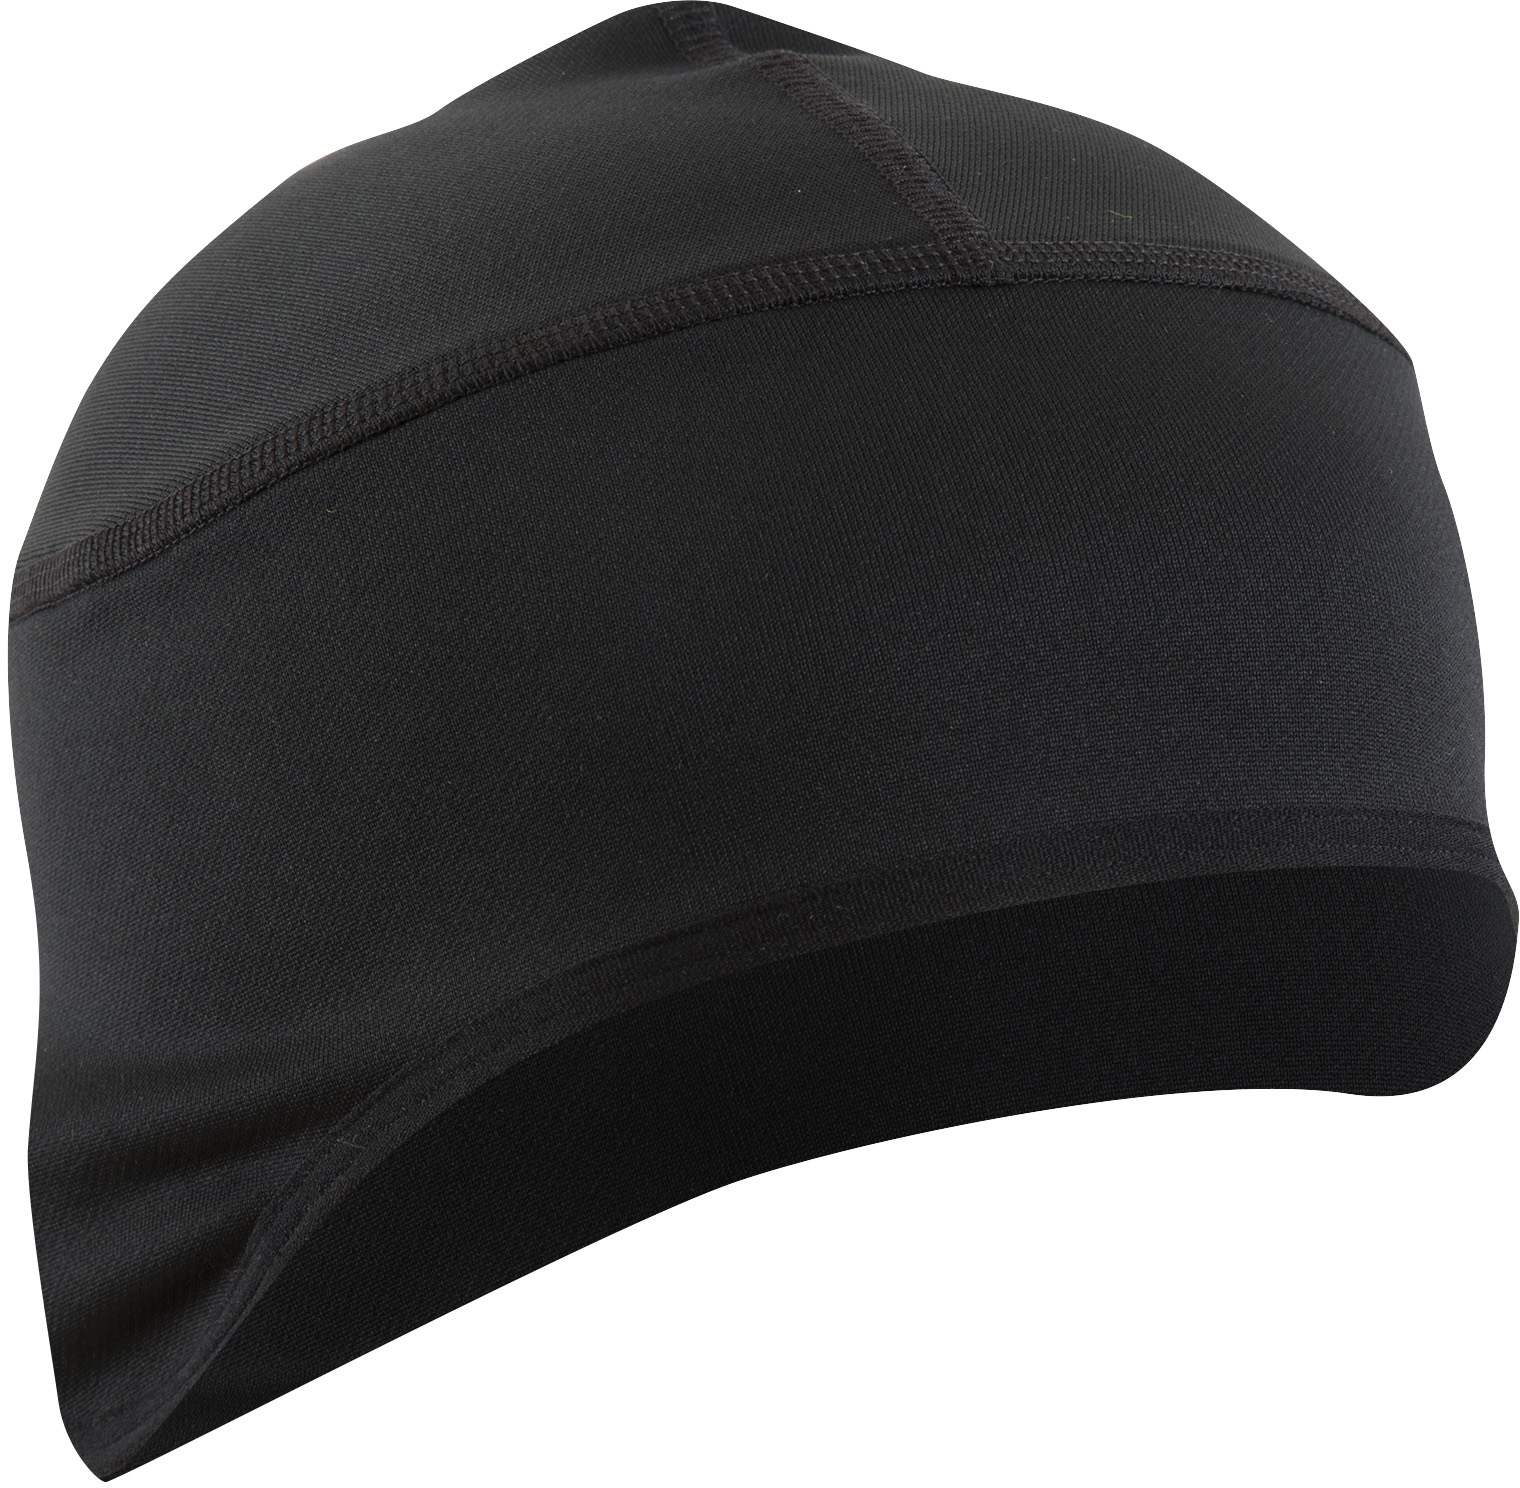 Cycling caps and headwear d6f4c4fbcc03